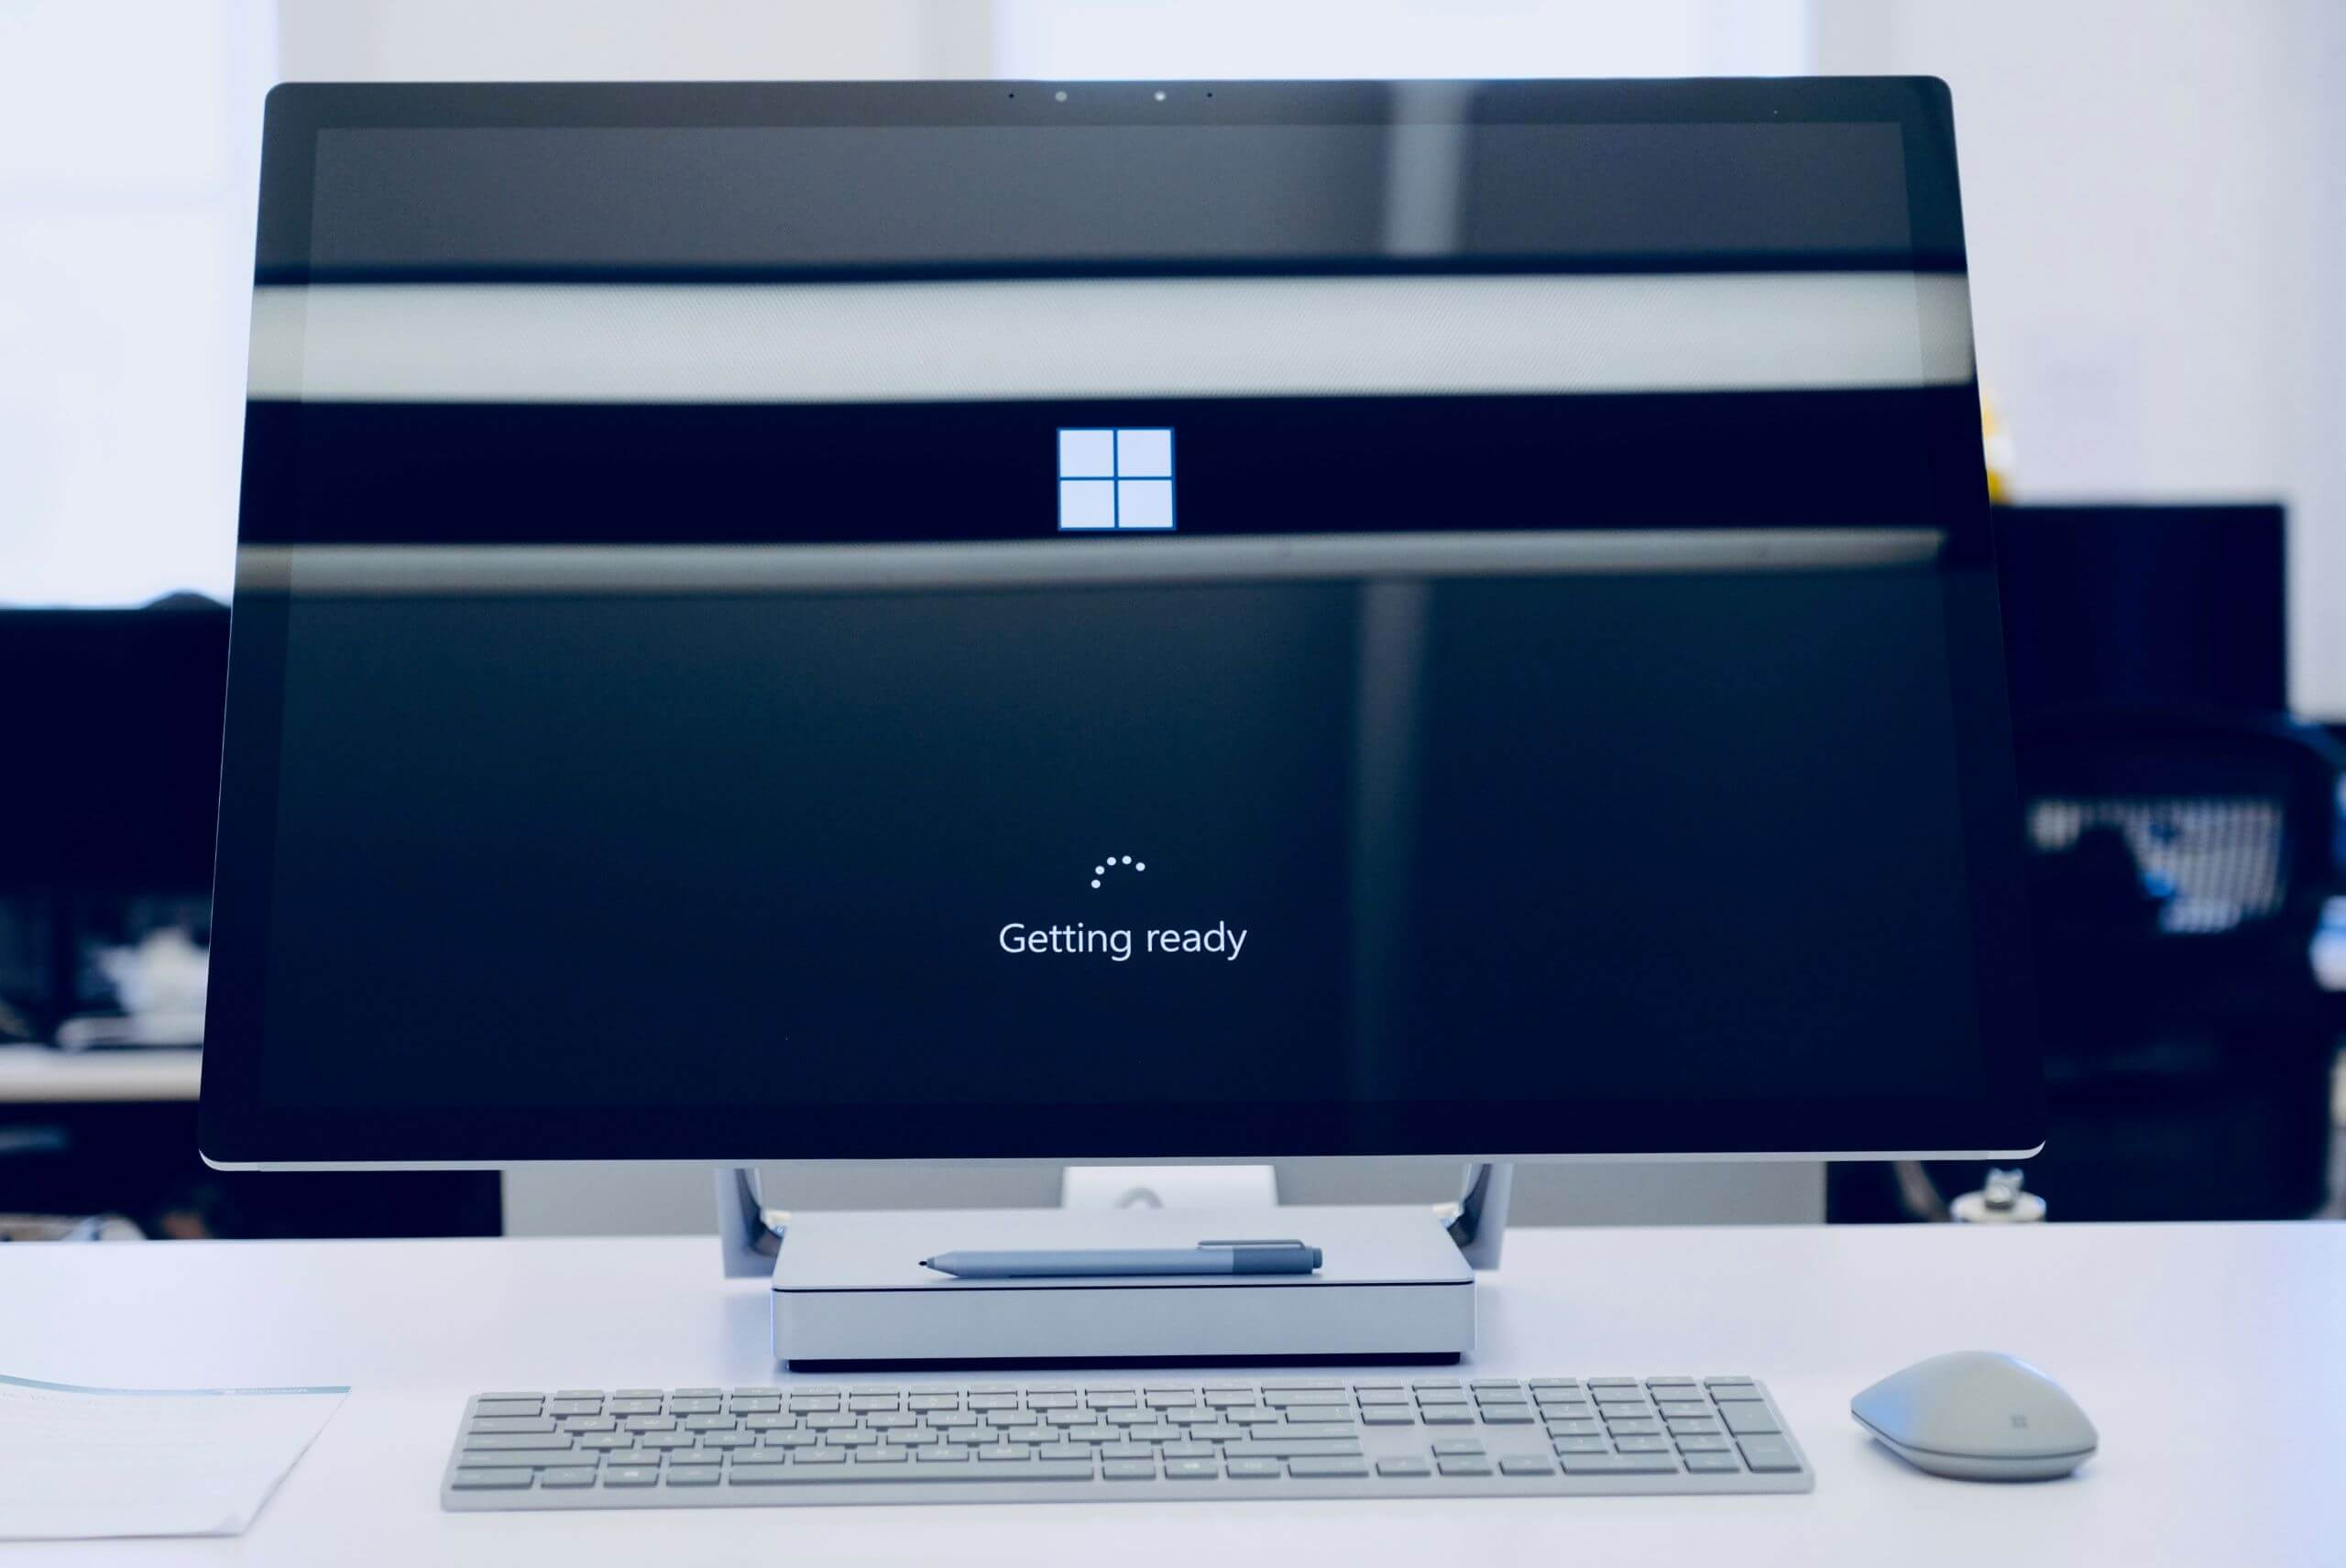 Microsoft wants you to know they've improved Windows 10 lately